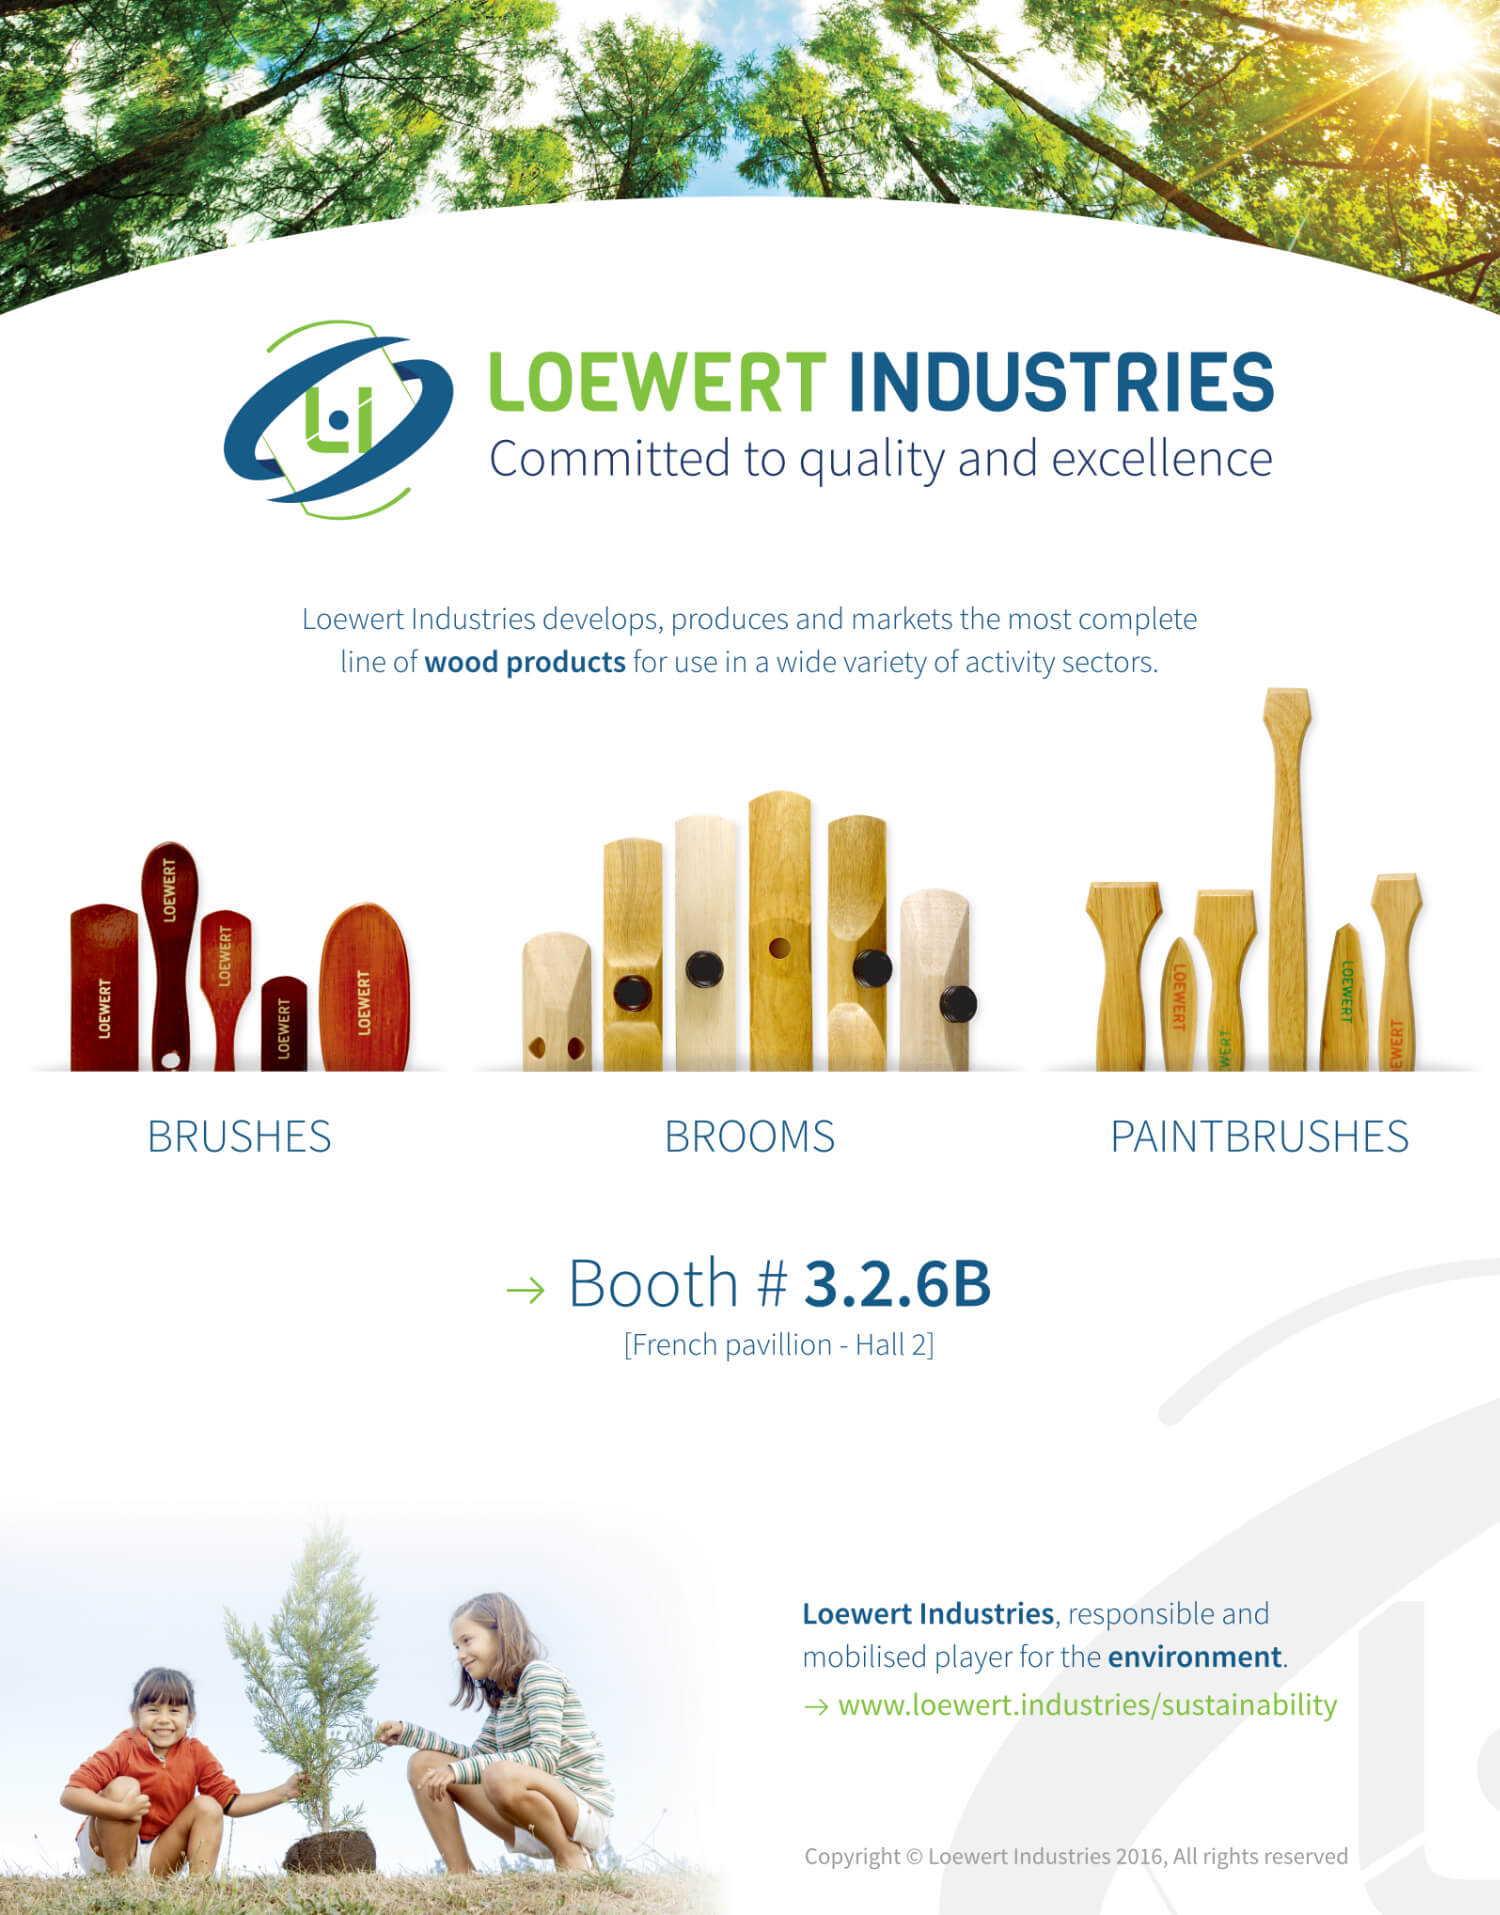 Loewert Industries at Interbrush 2016